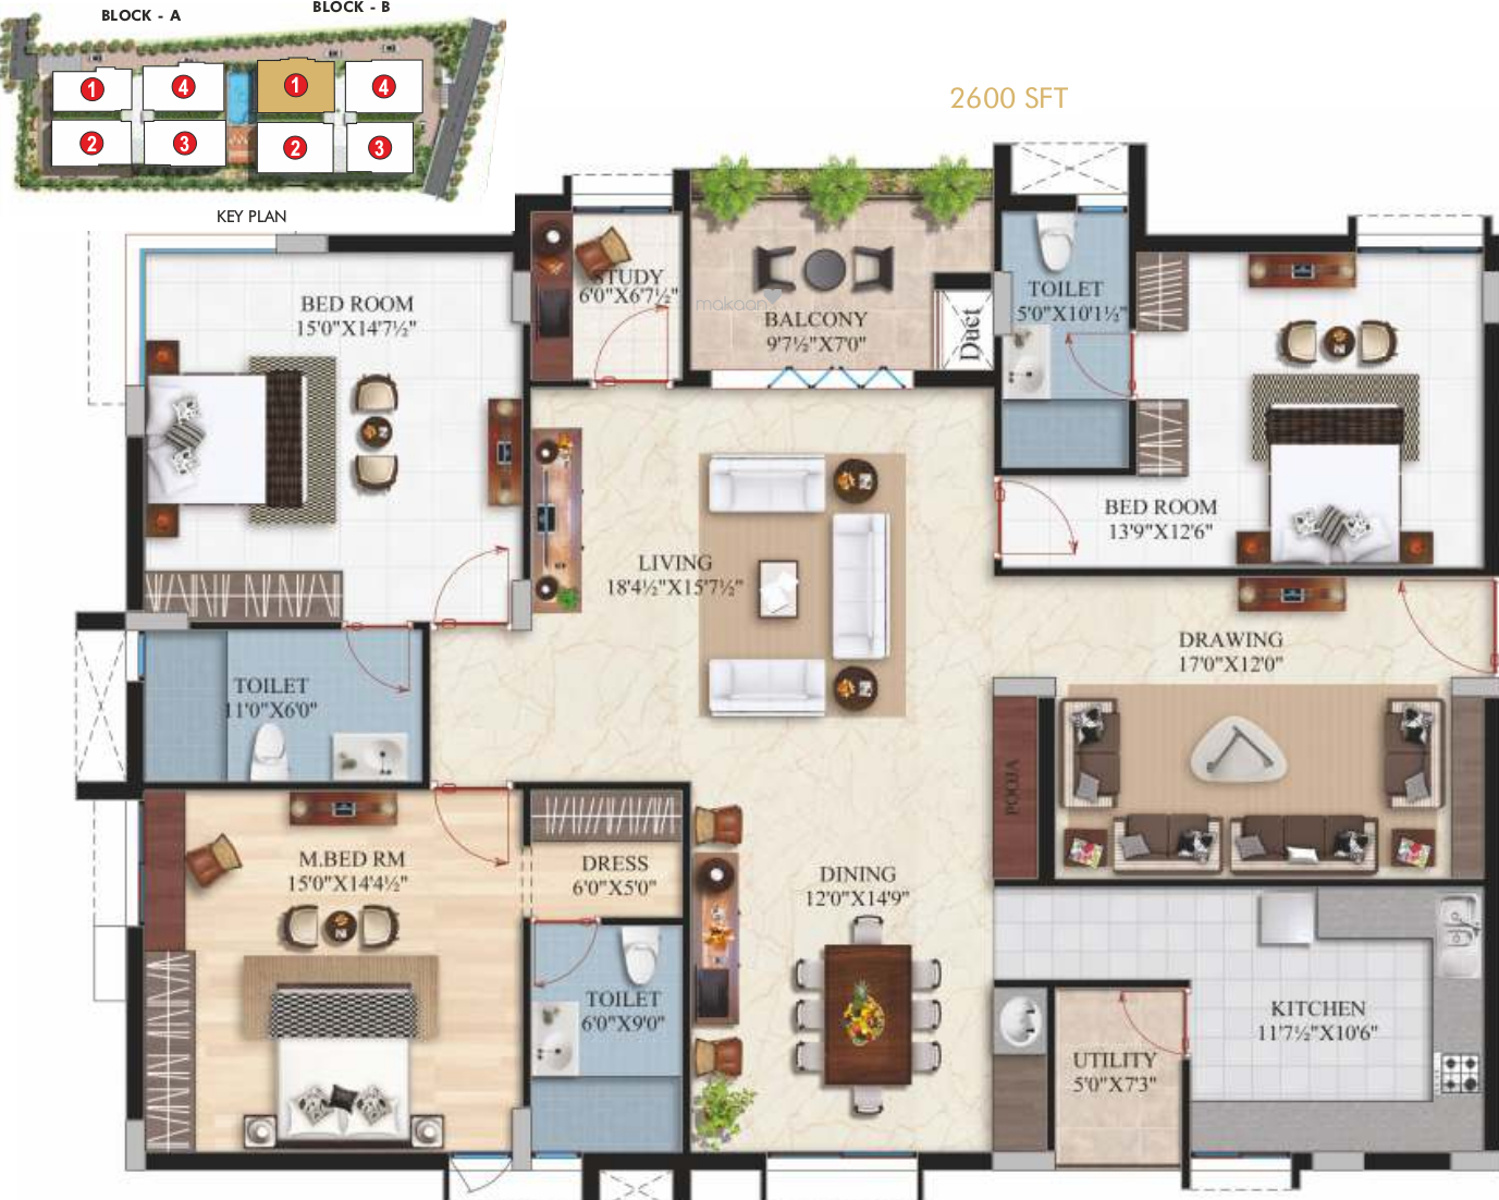 Apartment Floor Plans In Hyderabad apartment floor plans in hyderabad ark homes 2 bhk 1075 sqft for